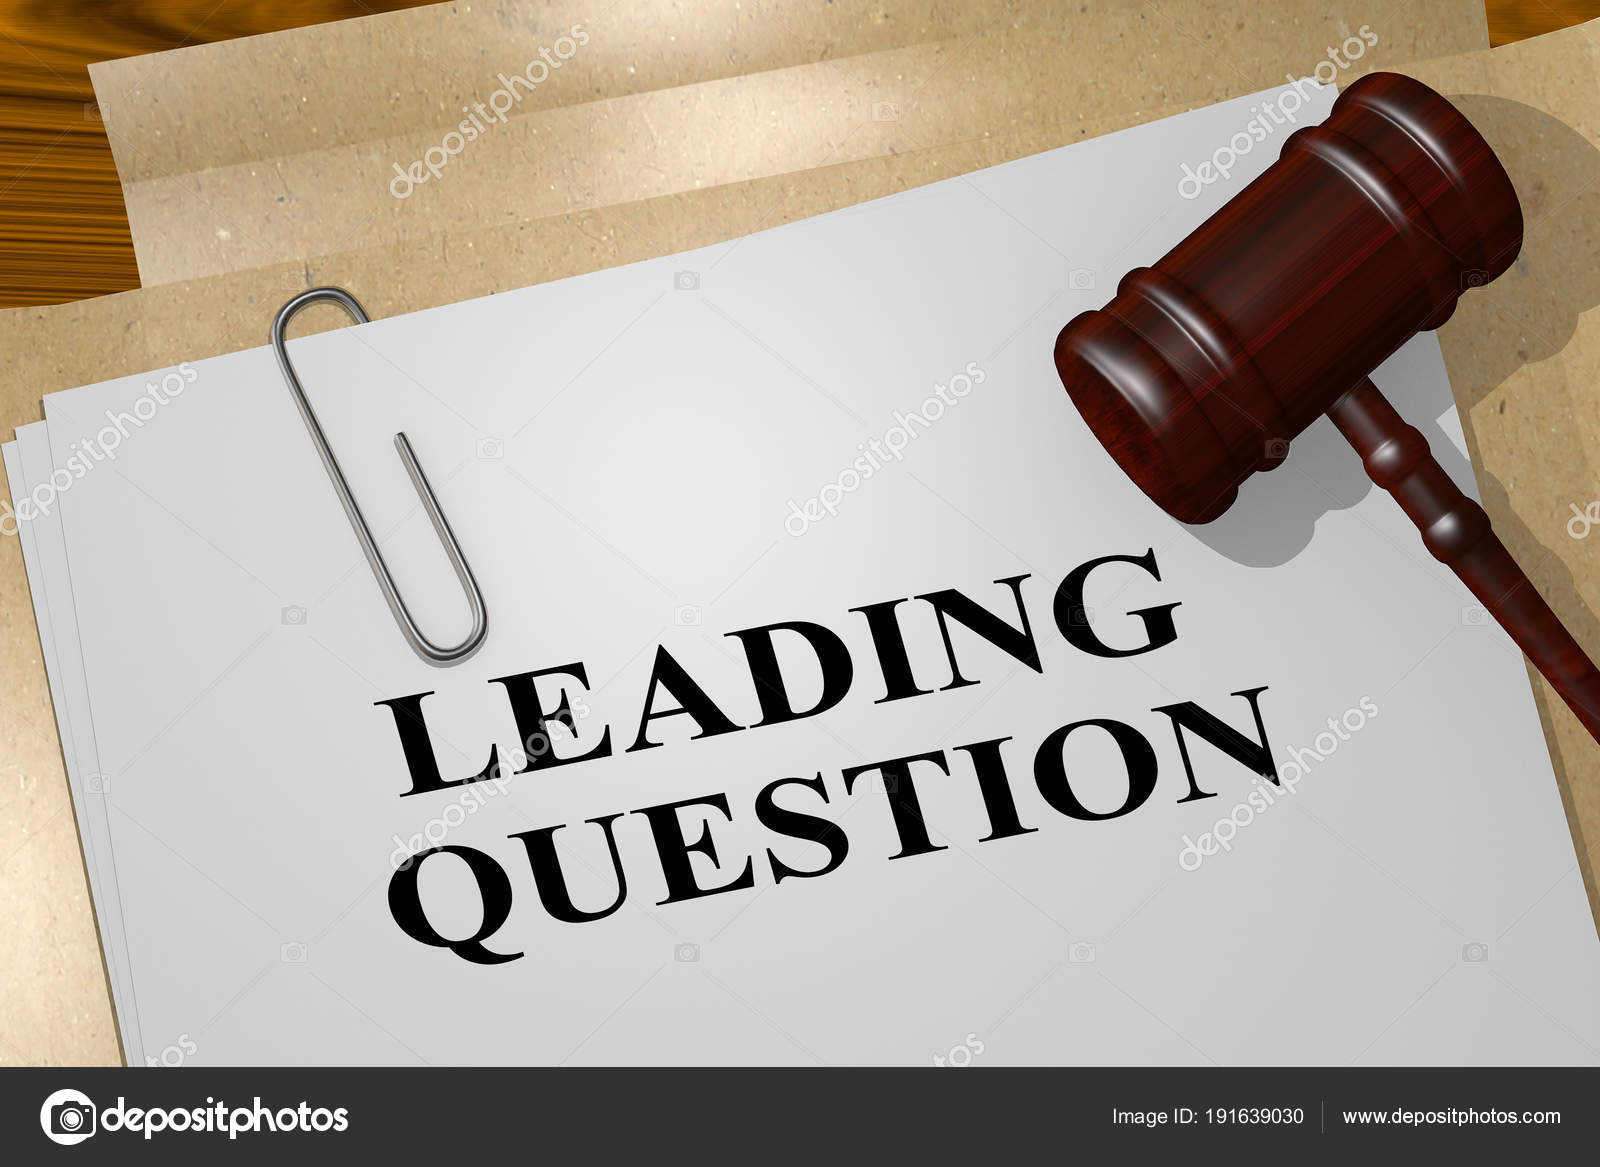 what is a leading question